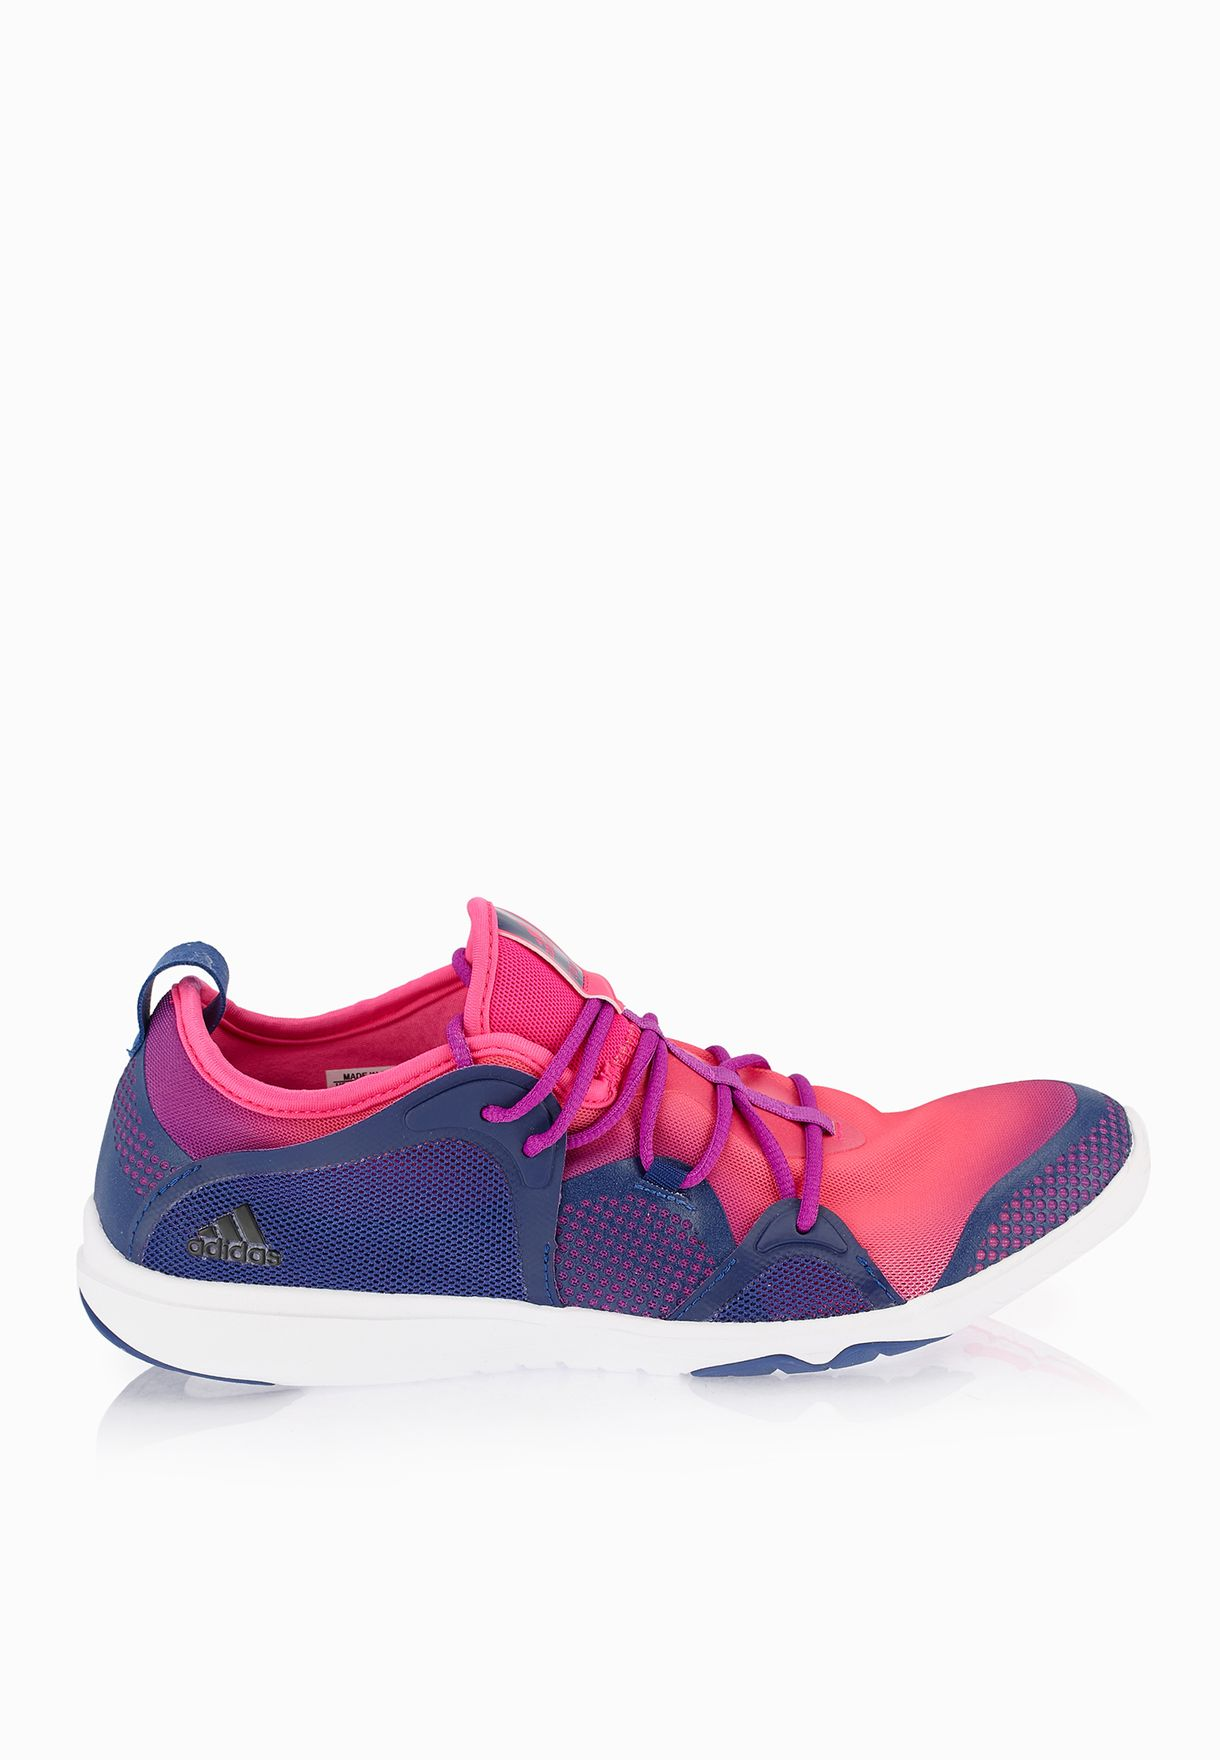 84e2191299c Shop adidas multicolor Adipure 360.4 AQ1944 for Women in Saudi ...